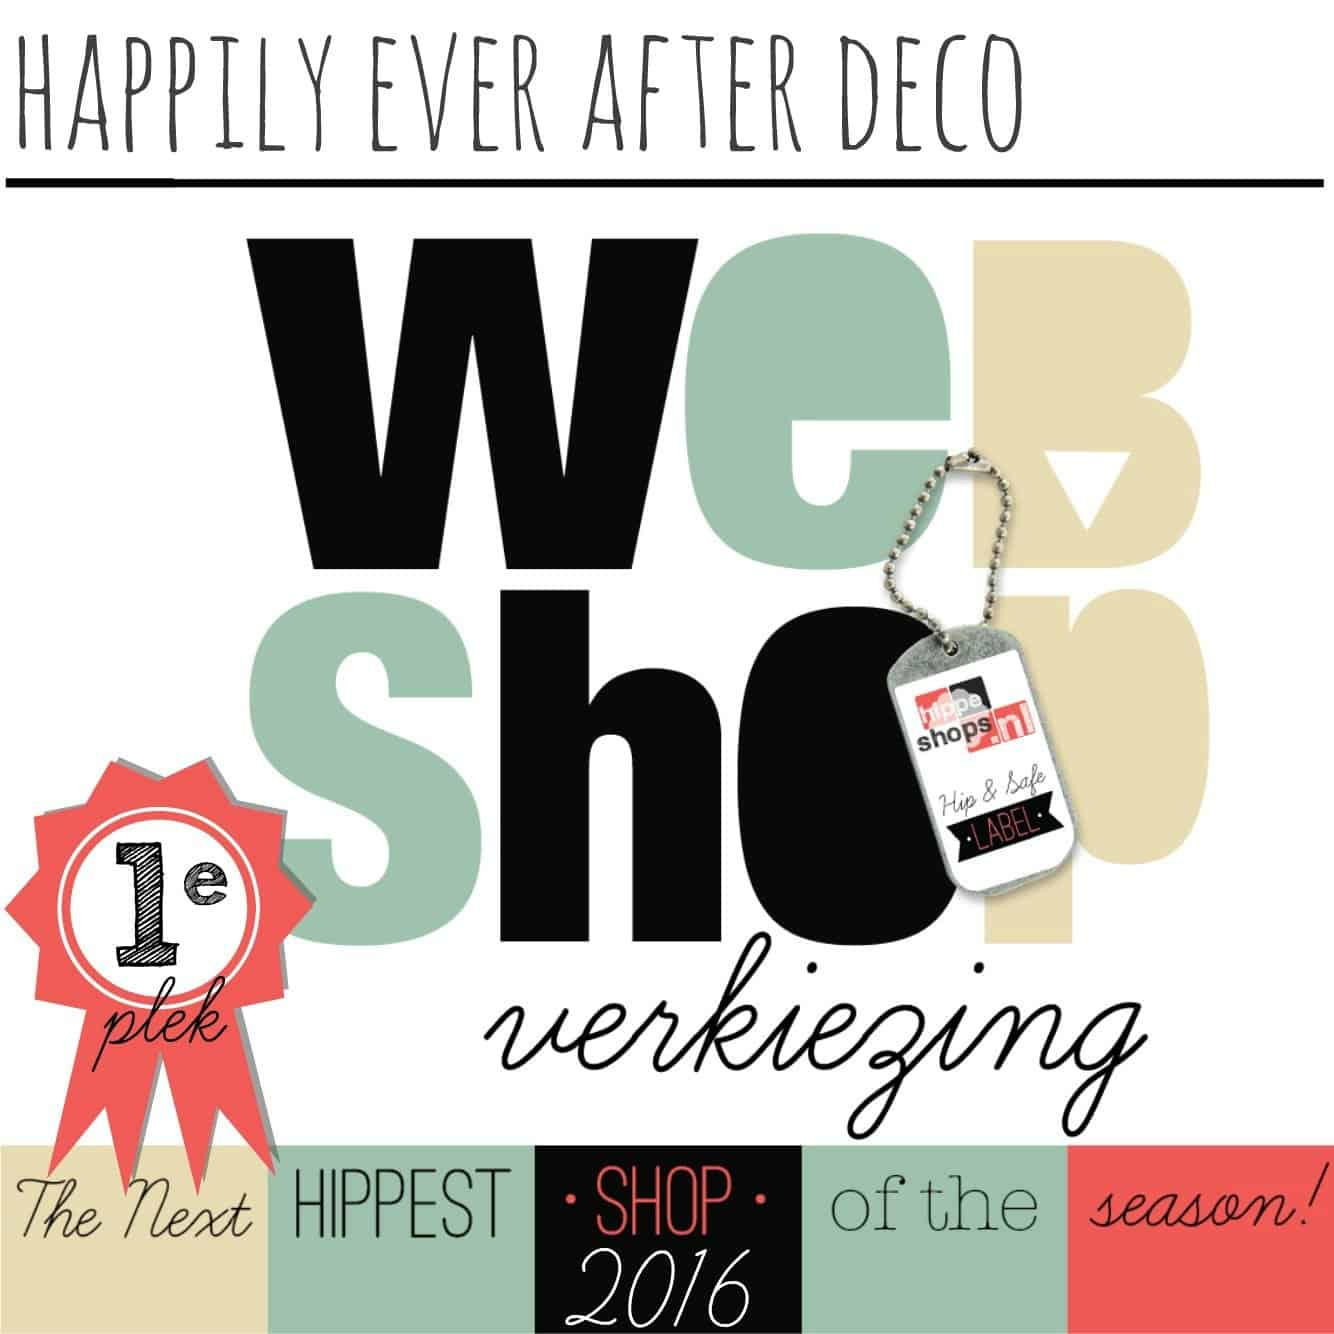 Happily Ever After Deco wint de 'Next Hippest Shop 2016 Webshopverkiezing'